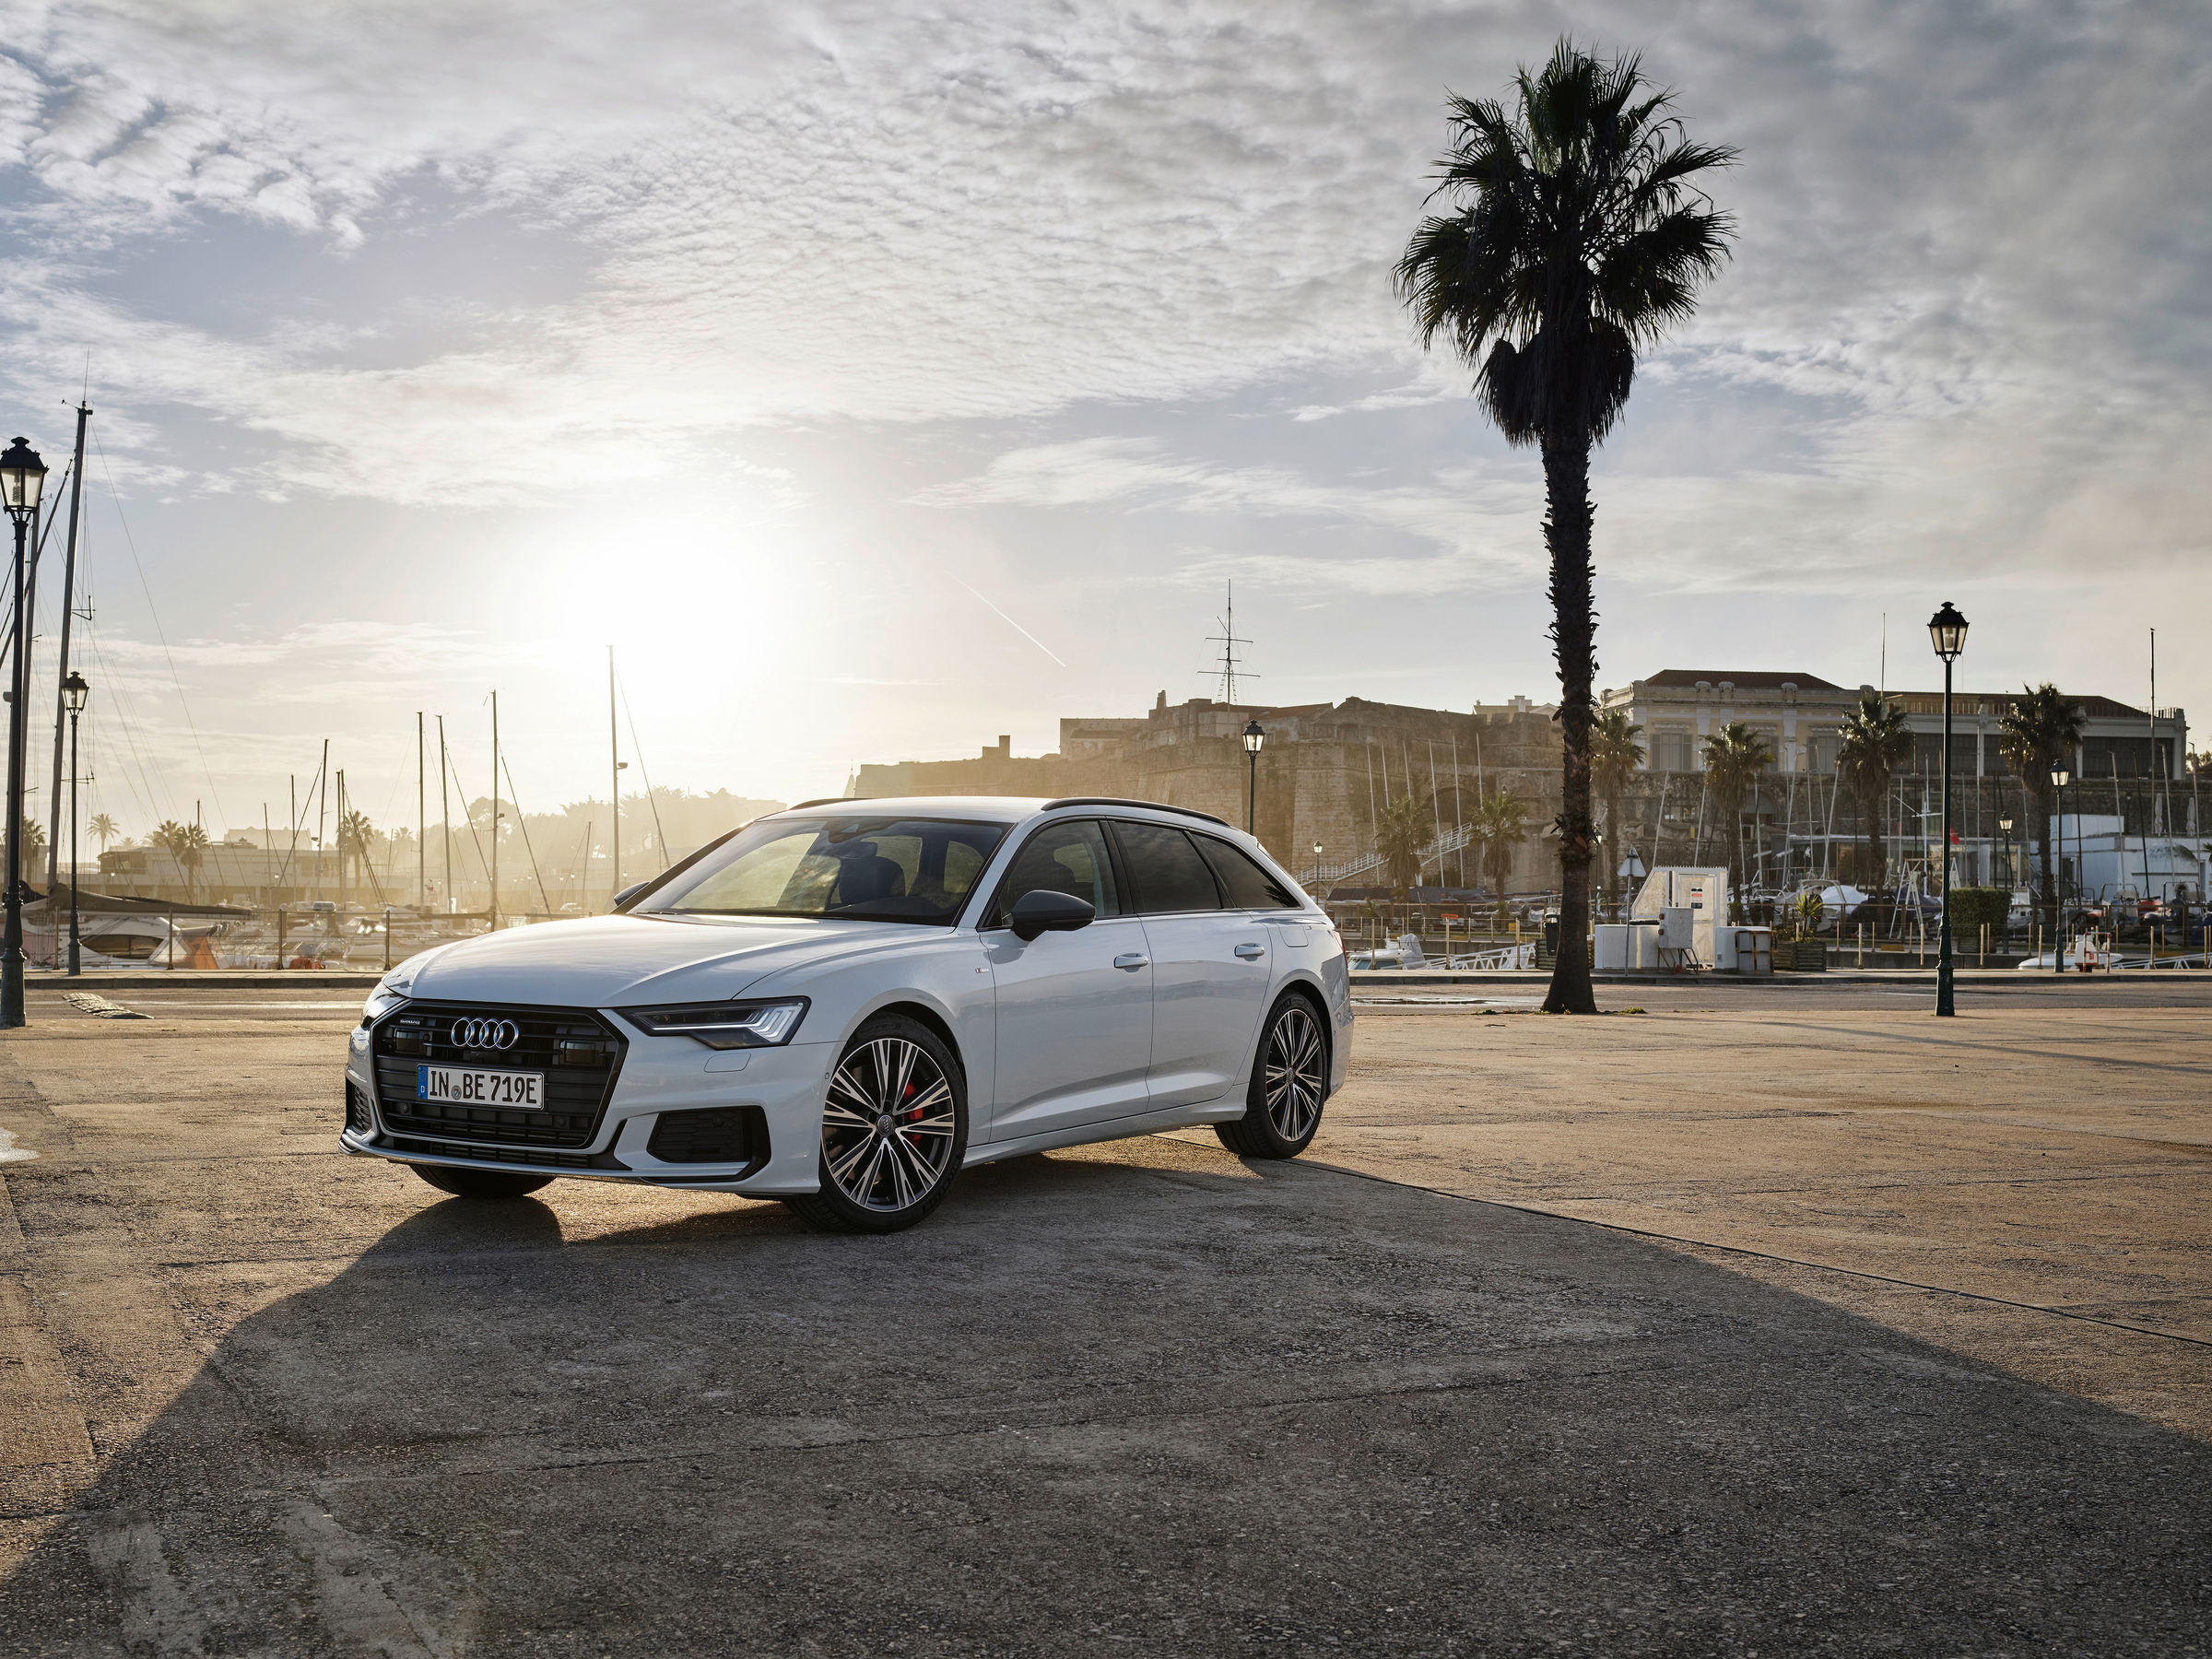 Audi full-size station wagon now as a plug-in hybrid: the new A6 Avant TFSI e quattro - Image 1